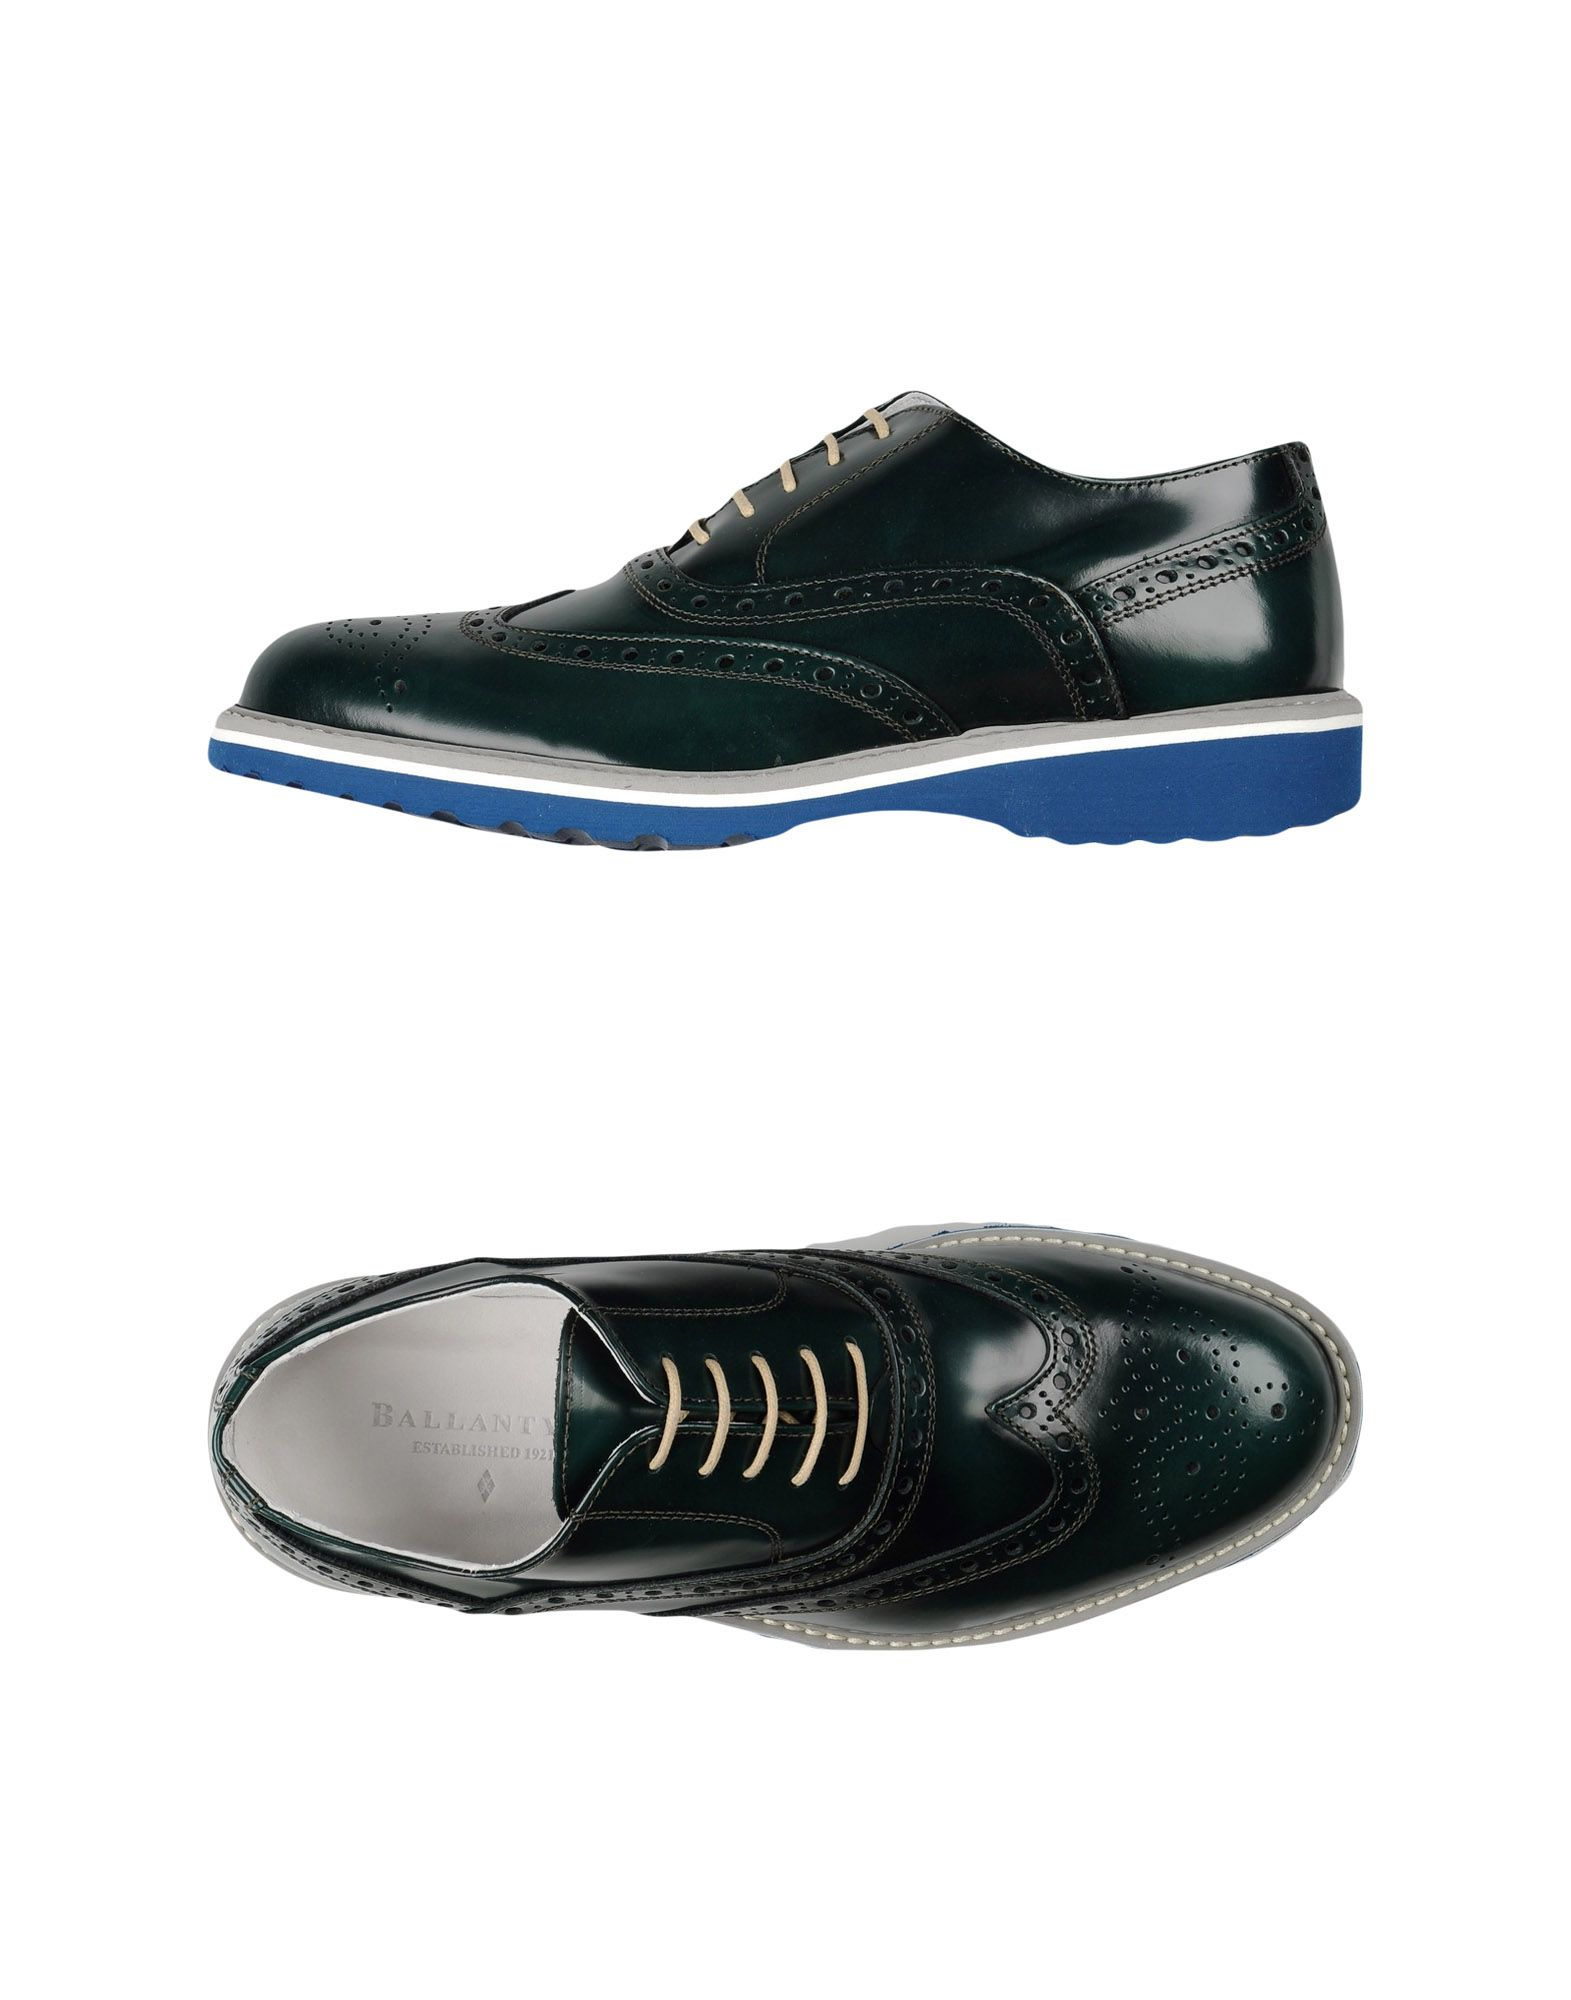 FOOTWEAR - Lace-up shoes Ballantyne nrhUEj